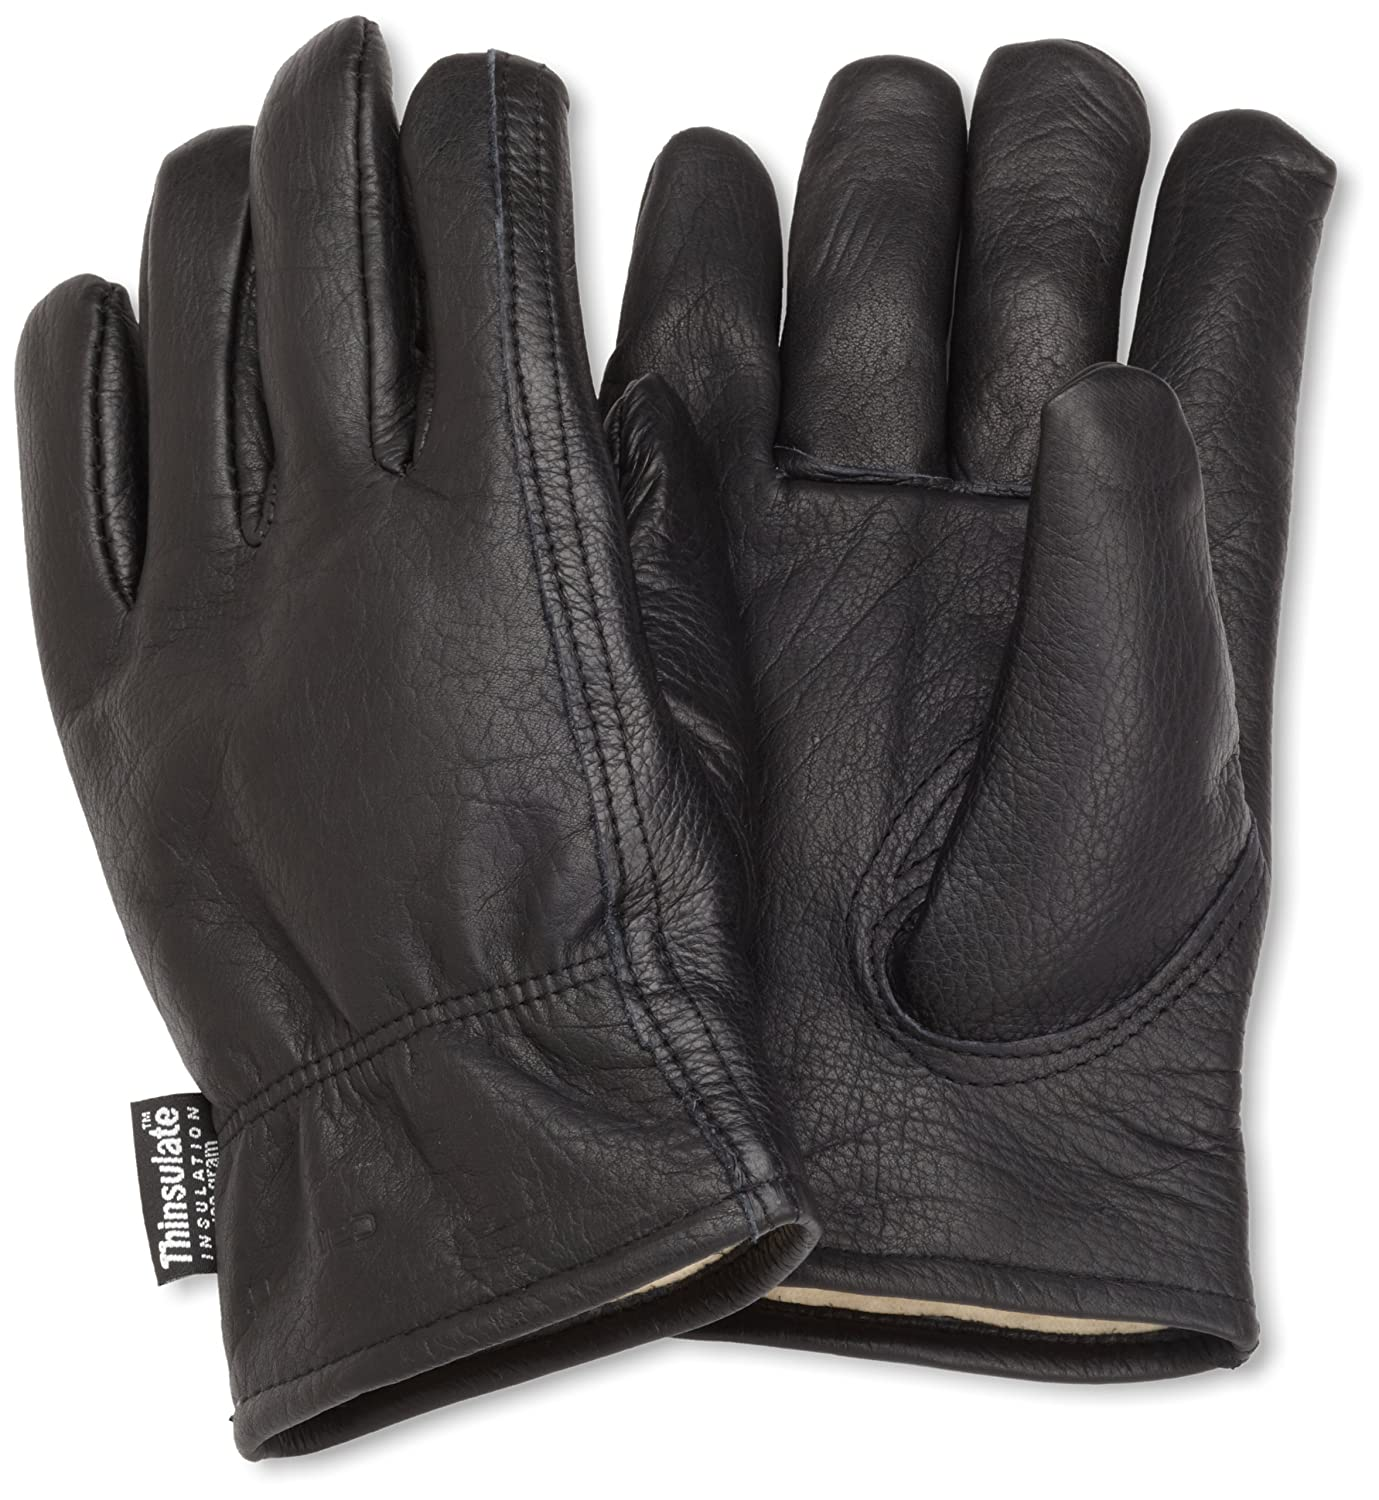 Motorcycle leather gloves amazon - Amazon Com Carhartt Men S Insulated Full Grain Leather Driver Work Glove Black Small Clothing